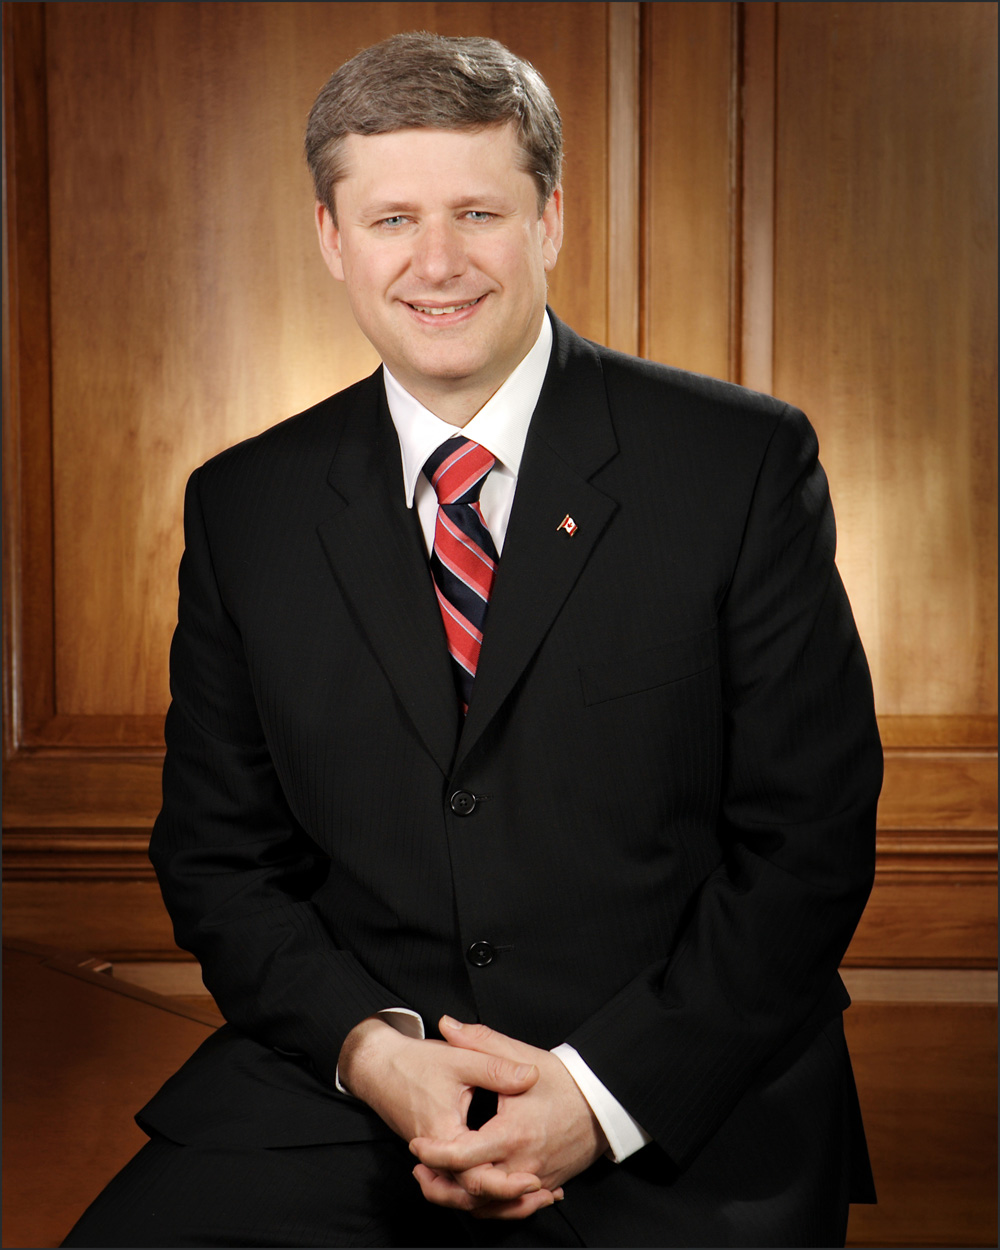 Link to the profile of the prime minister Stephen Harper